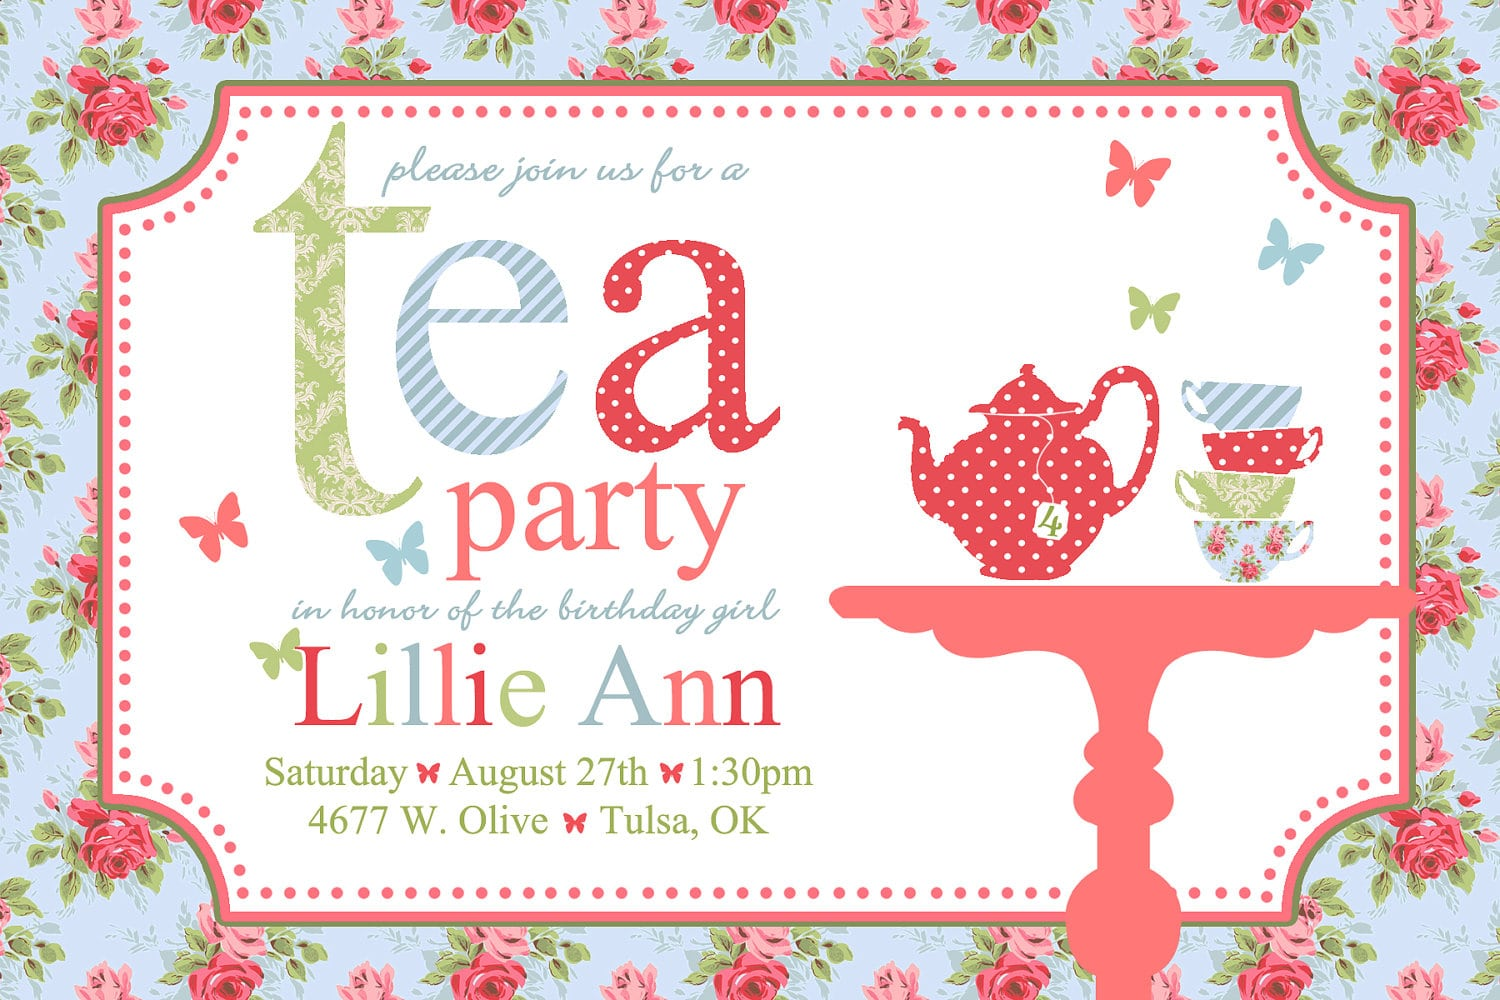 Tea Party Invitations Free Printable Mickey Mouse Invitations - Tea party invitation template free